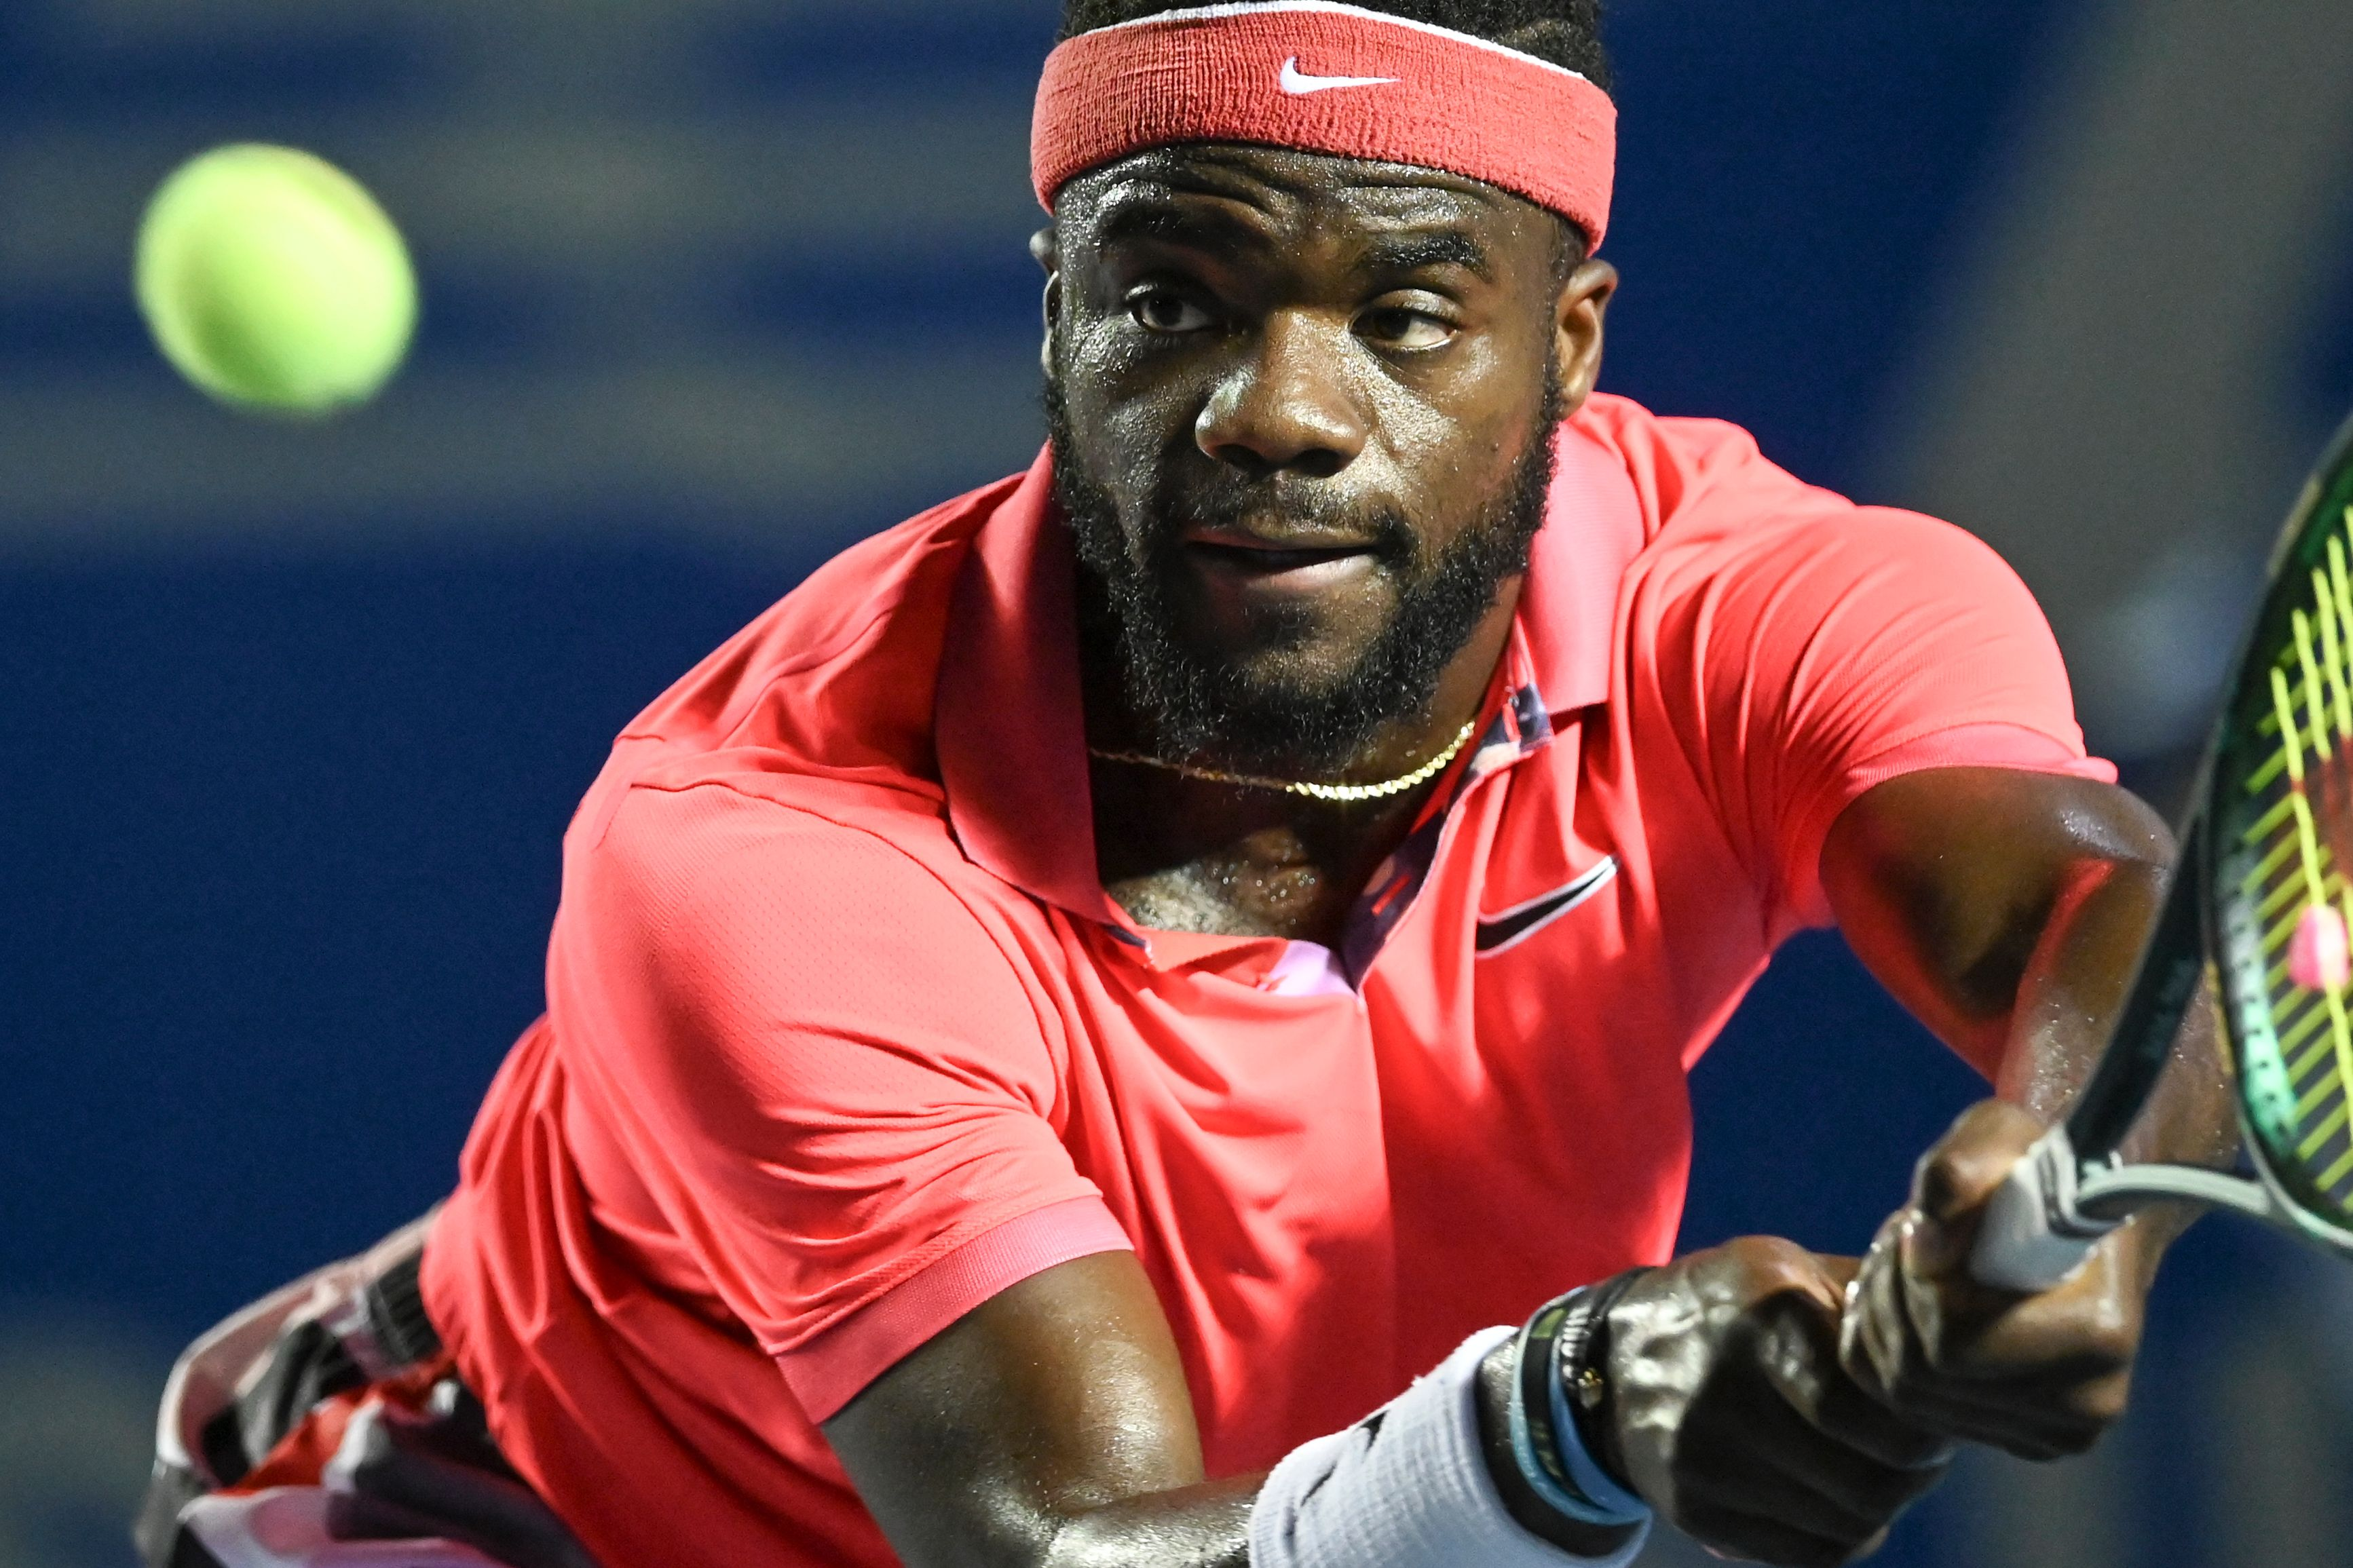 Frances Tiafoe unites tennis stars in protest but feels some people don't want black players to succeed